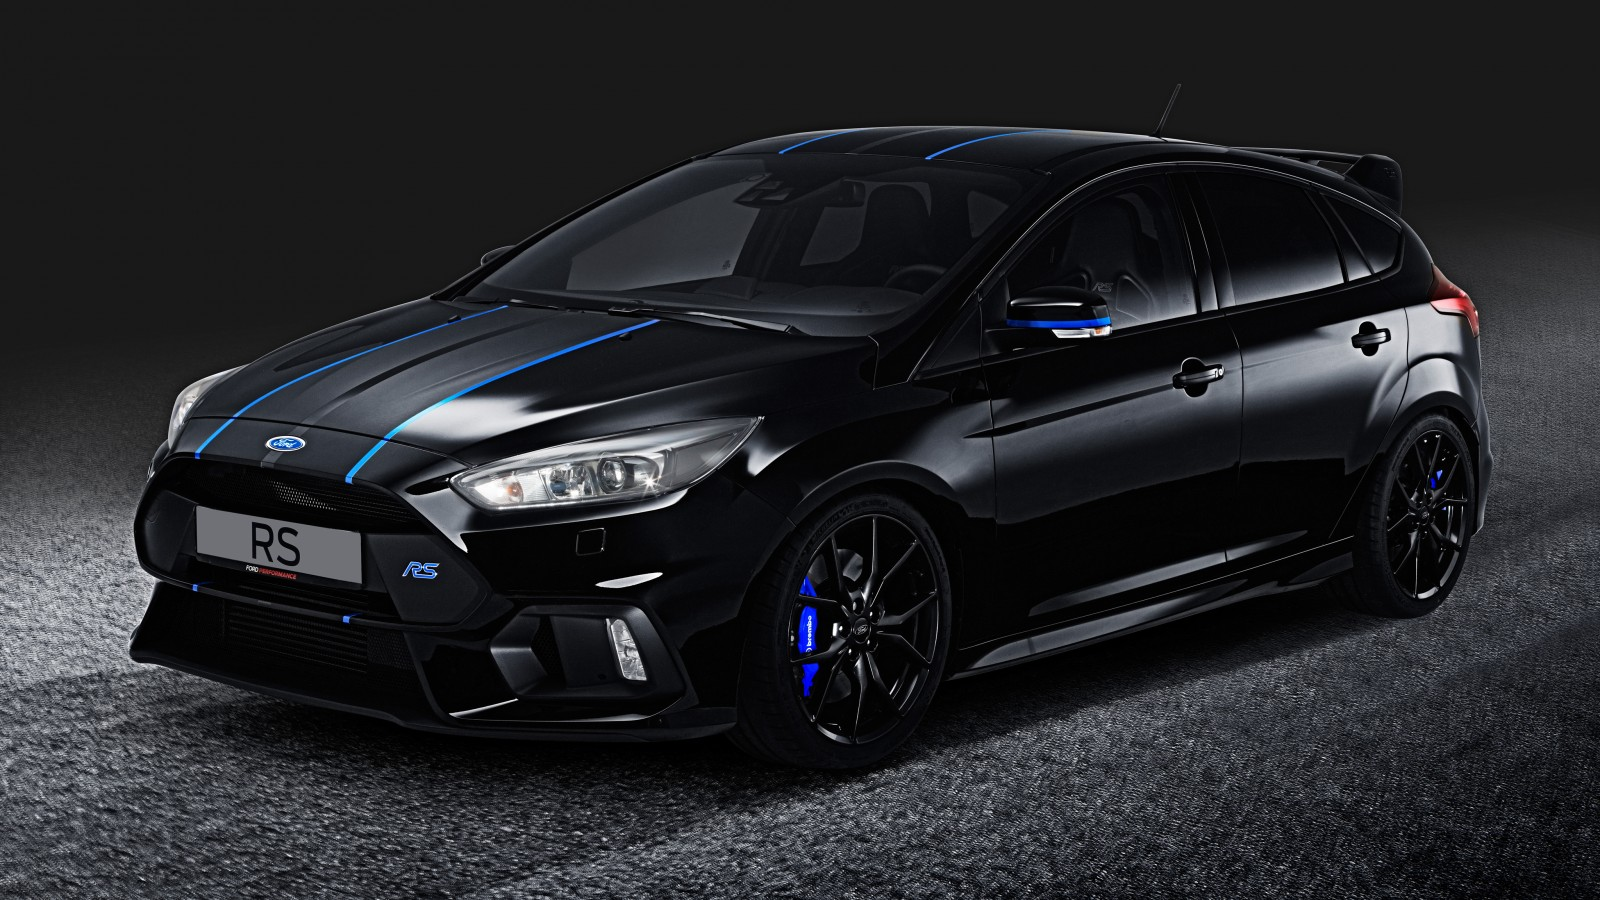 2017 Ford Focus Rs Performance Parts 4k Wallpaper Hd Car